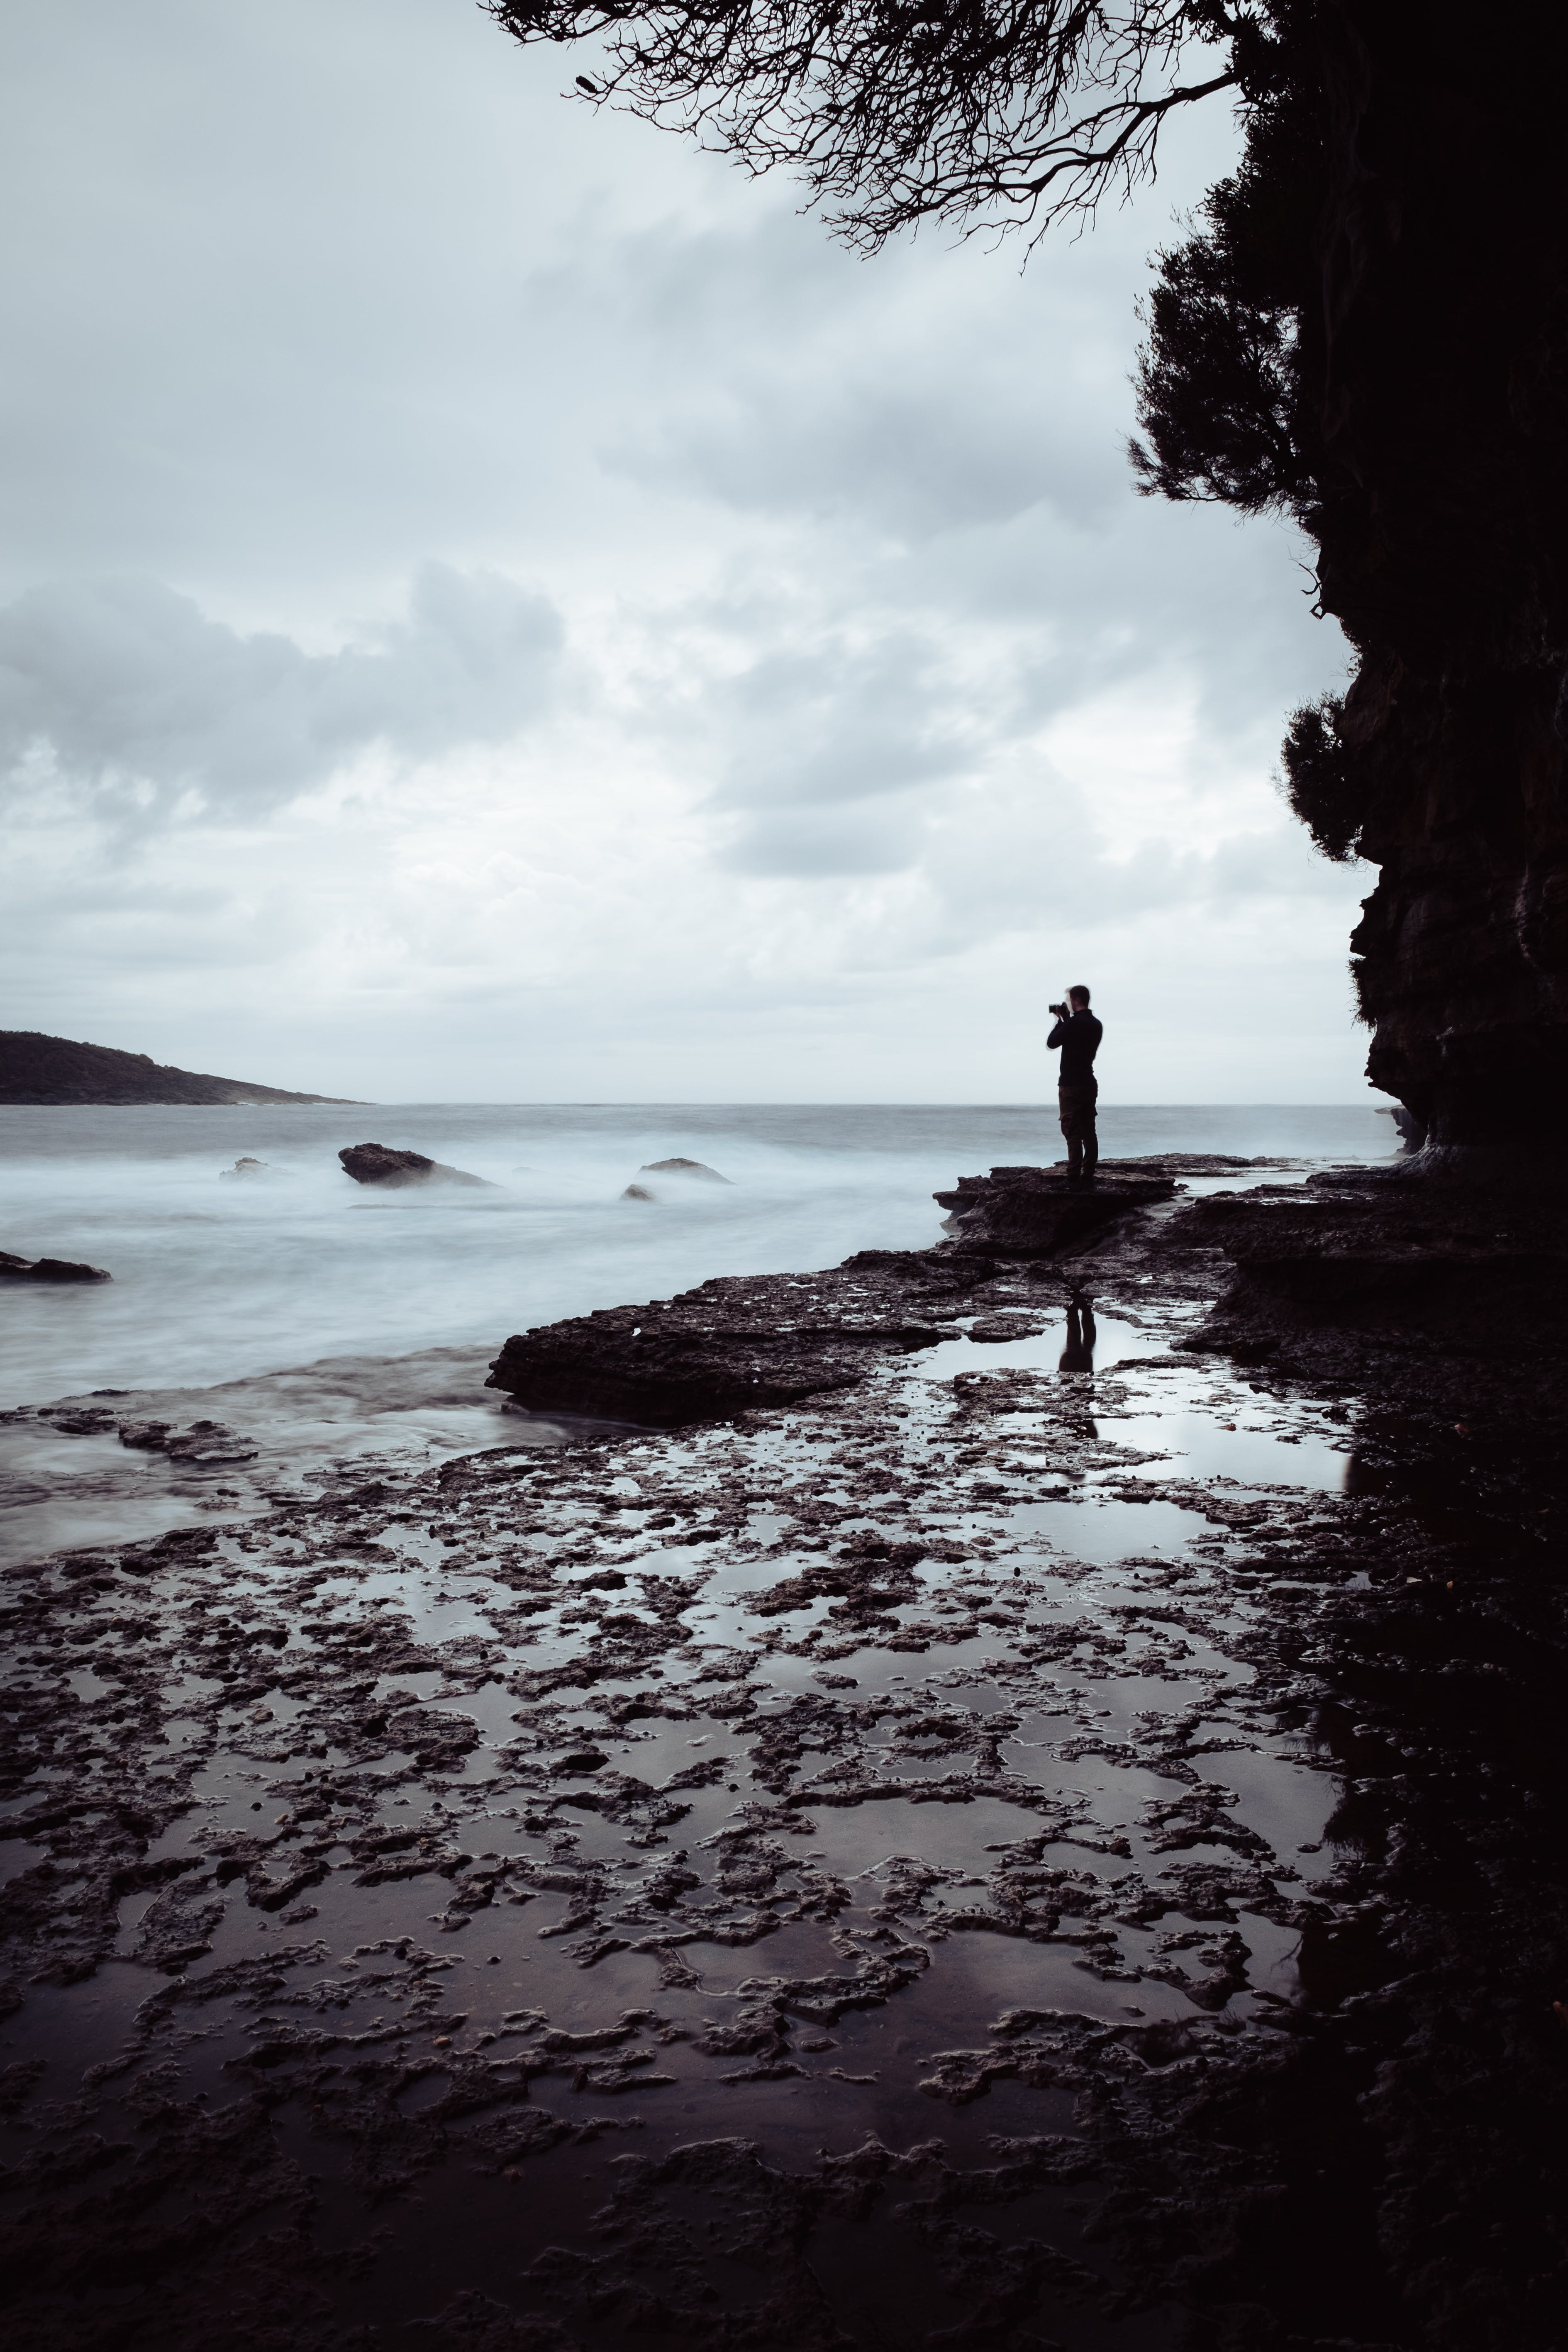 Man Standing on Rock Near Ocean